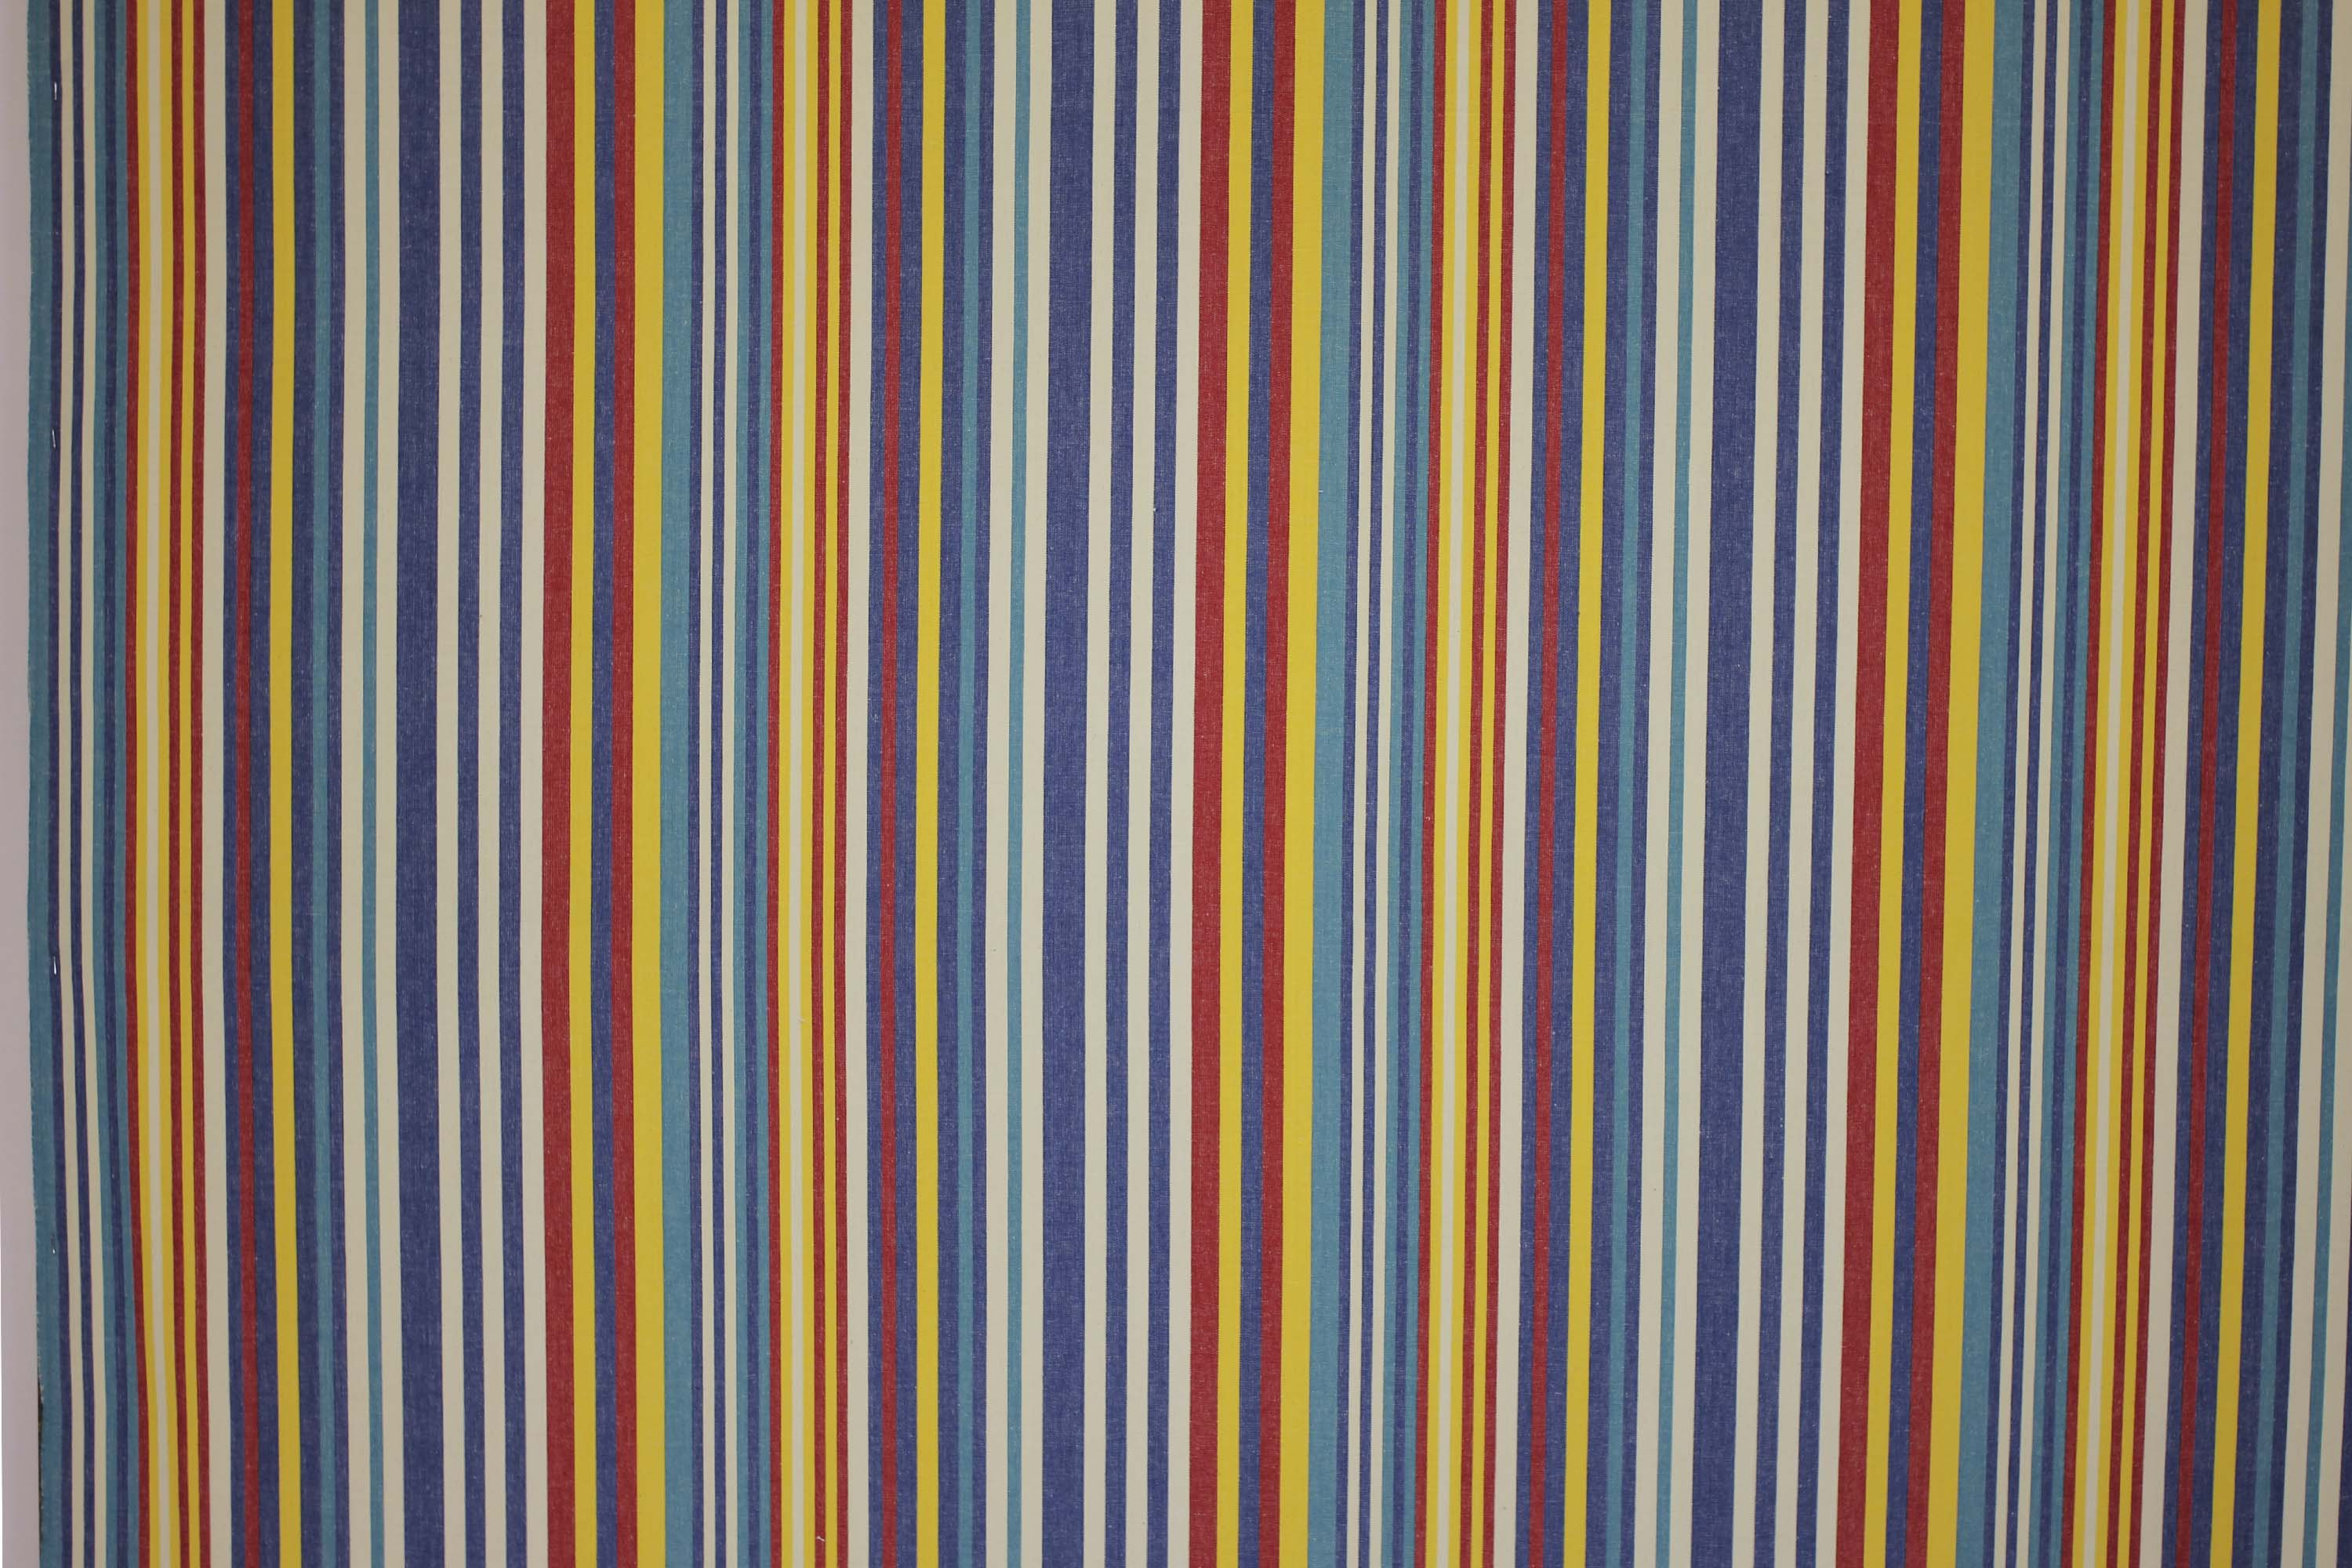 Denim Blue Striped Fabrics